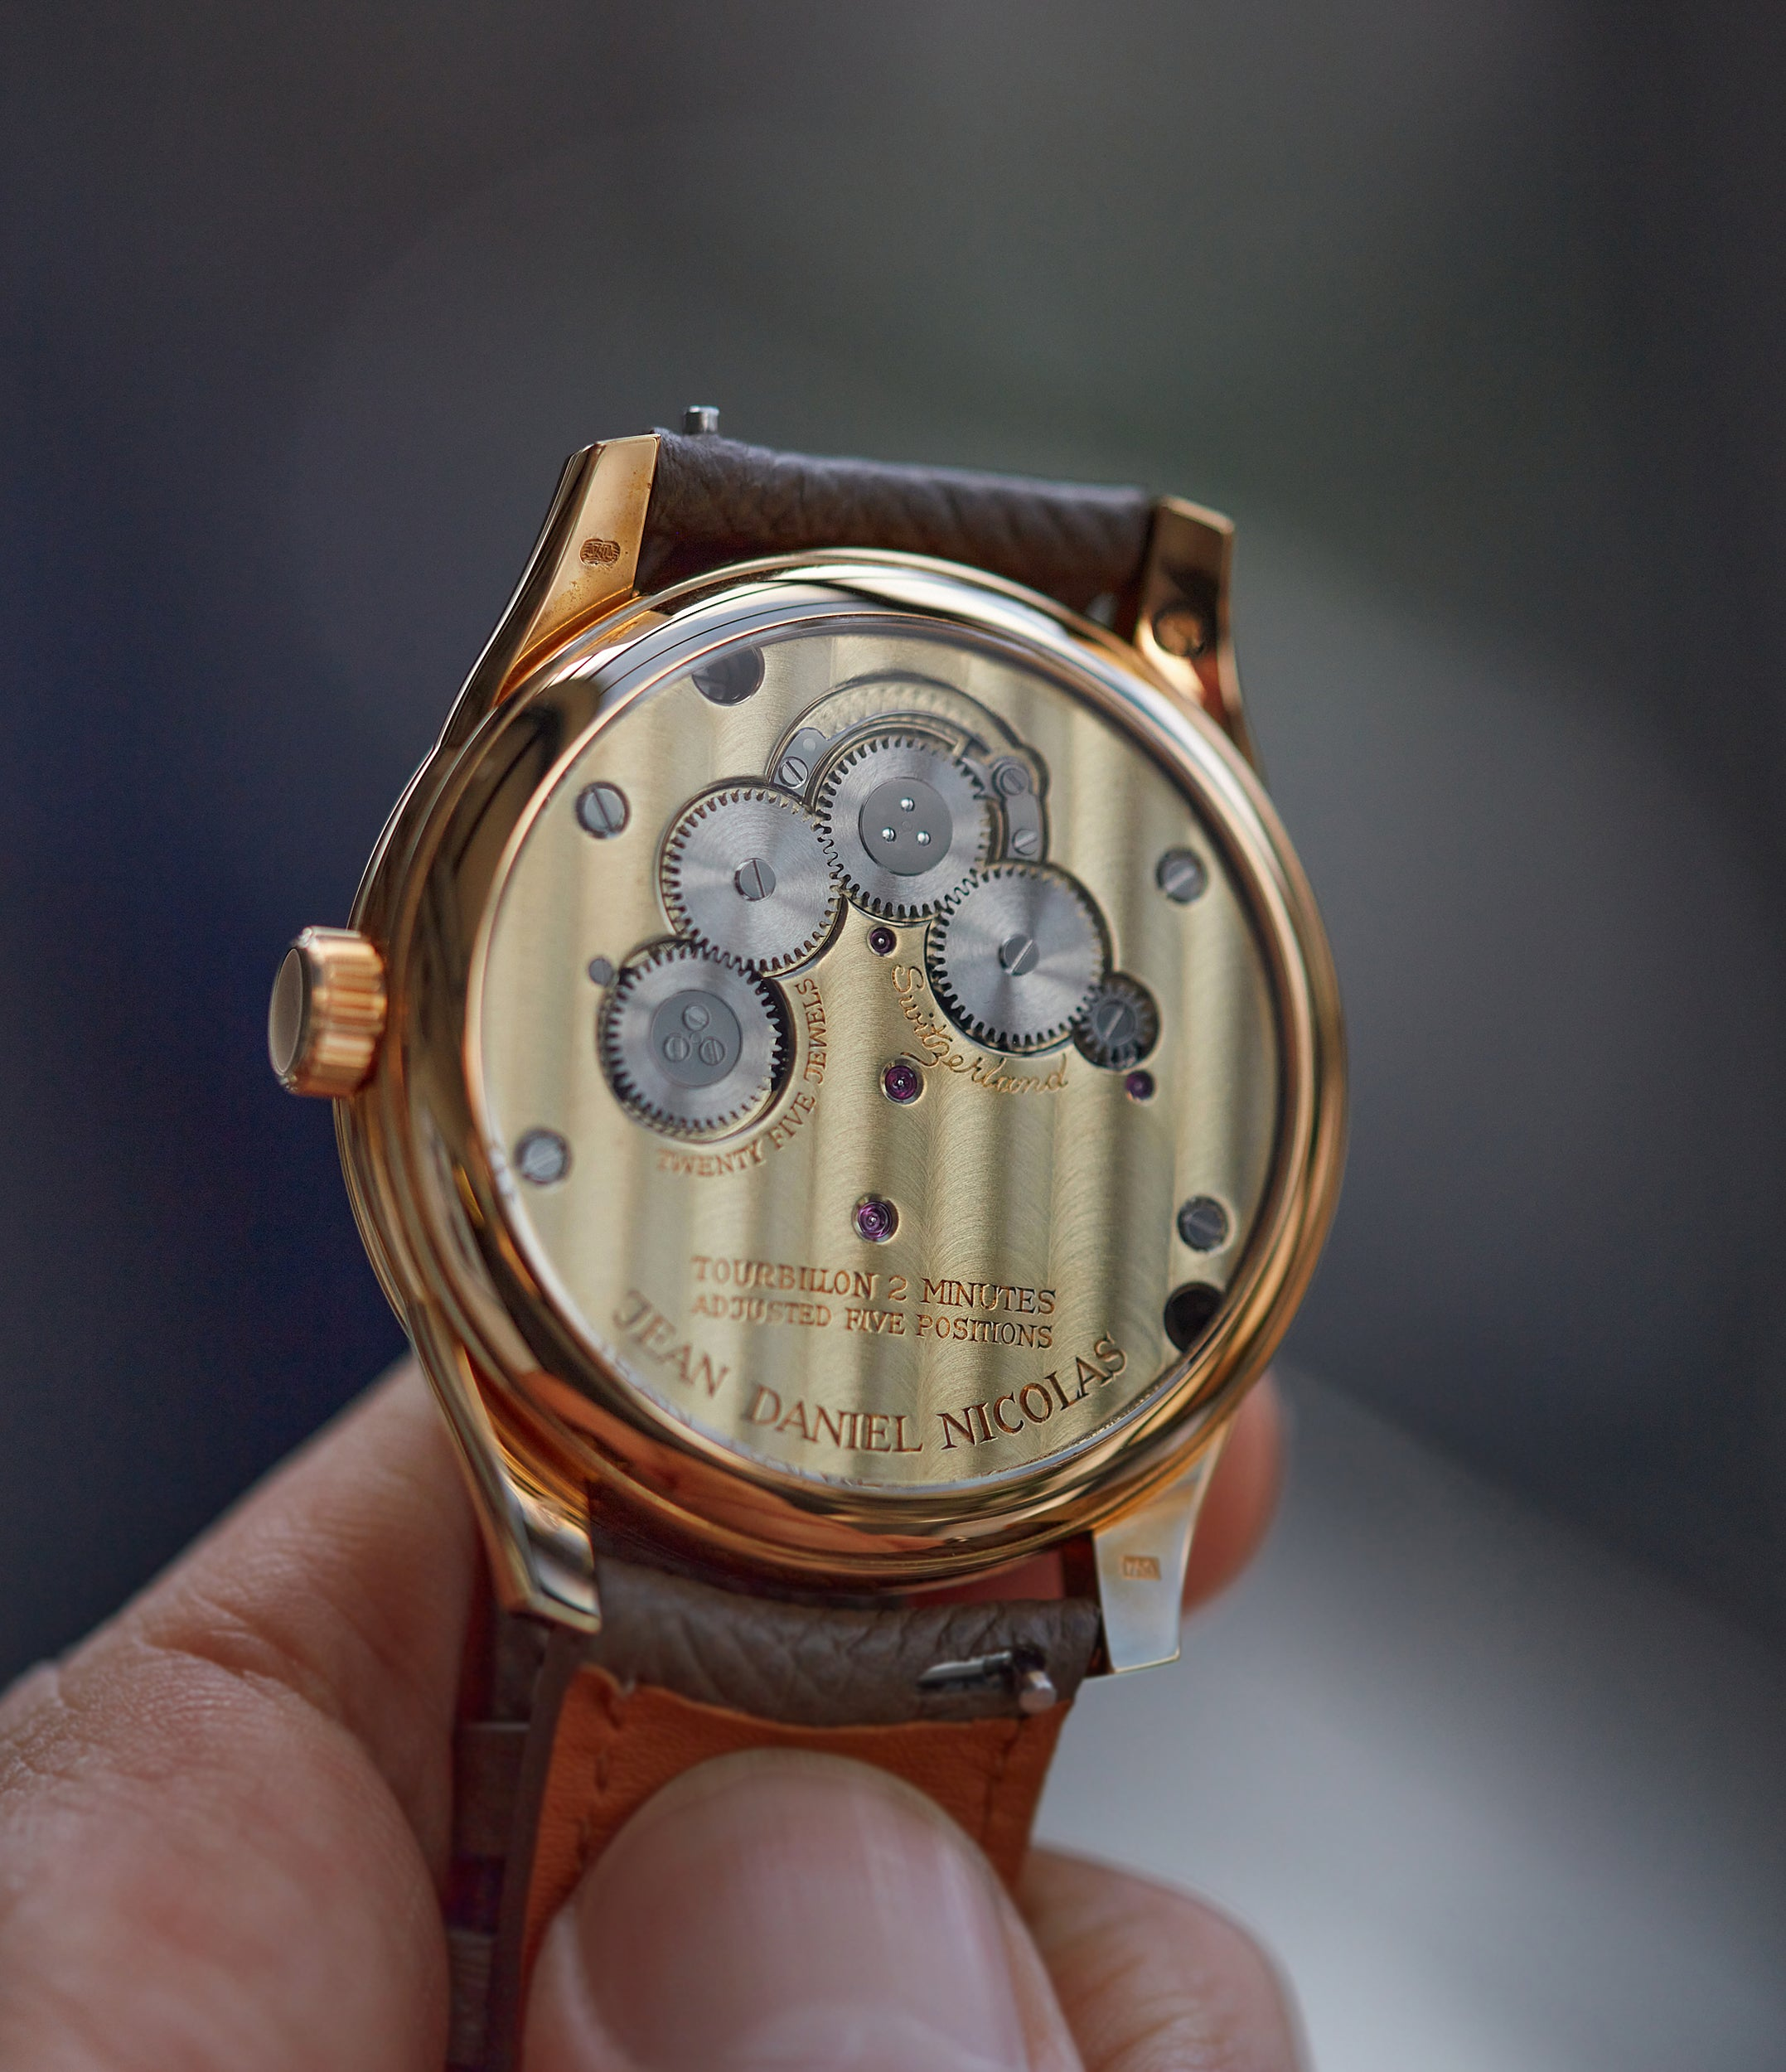 manual-winding tourbillon Jean Daniel Nicolas Two-Minute Tourbillon by independent watchmaker Daniel Roth rose gold pre-owned rare watch for sale online A Collected Man London specialist of rare watches